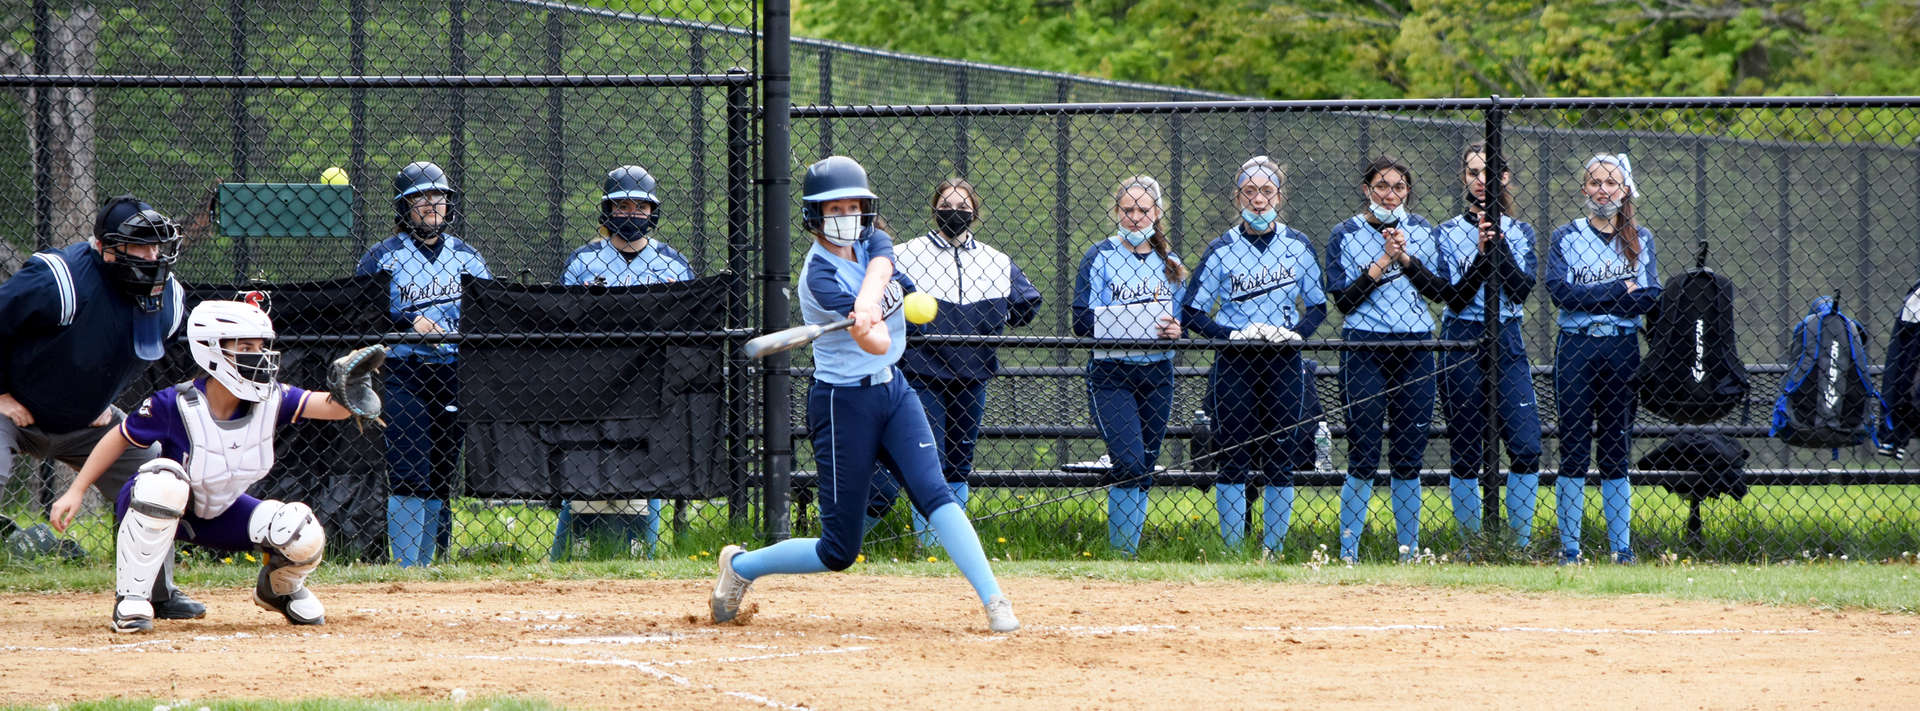 Girl hitting a softball while teammates look on